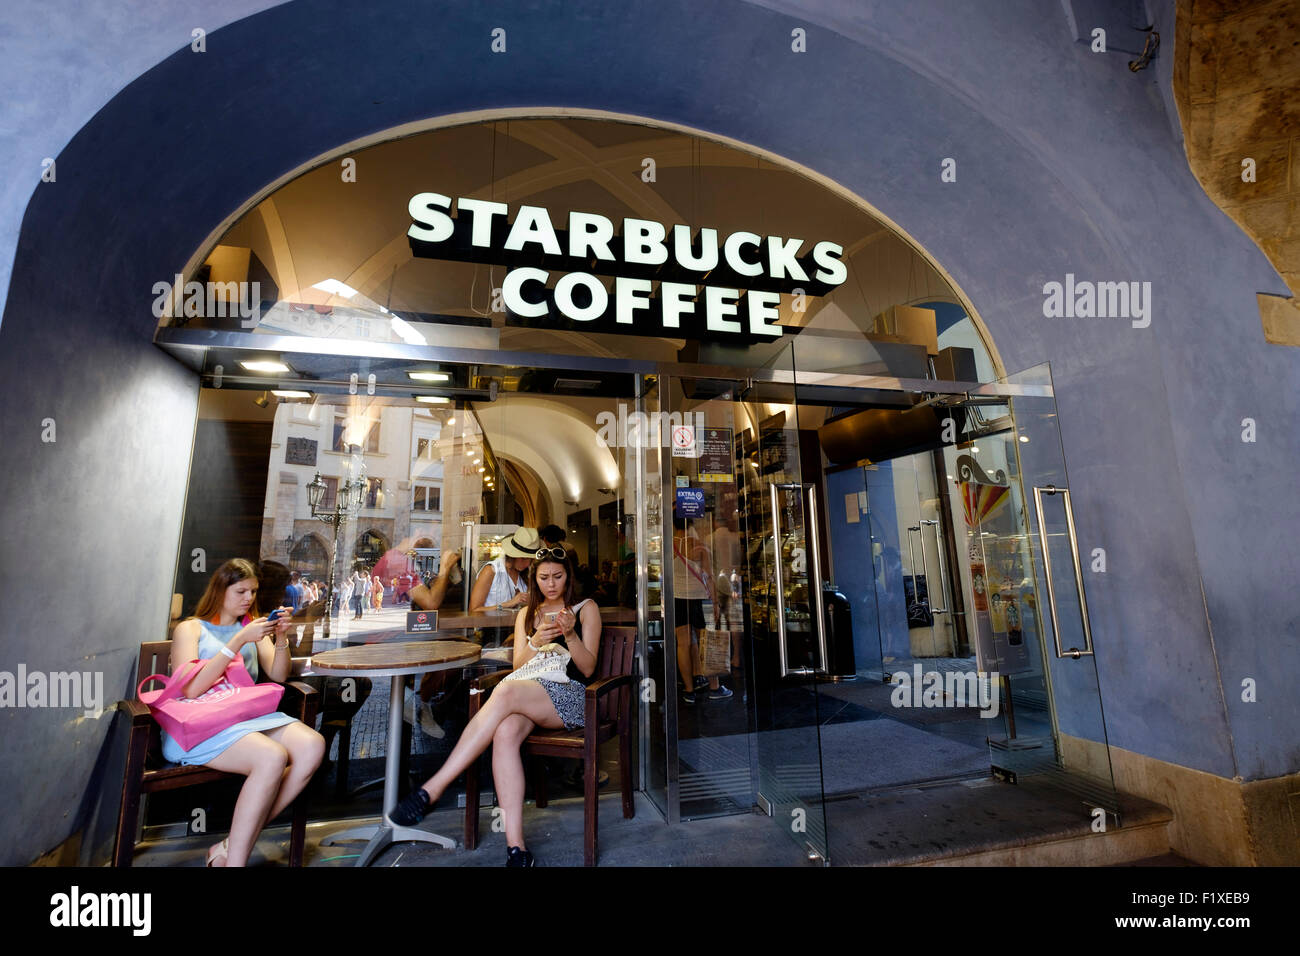 Inside Starbucks' New 'Coffee Wonderland' in Shanghai (Yes, They Really Call It That)